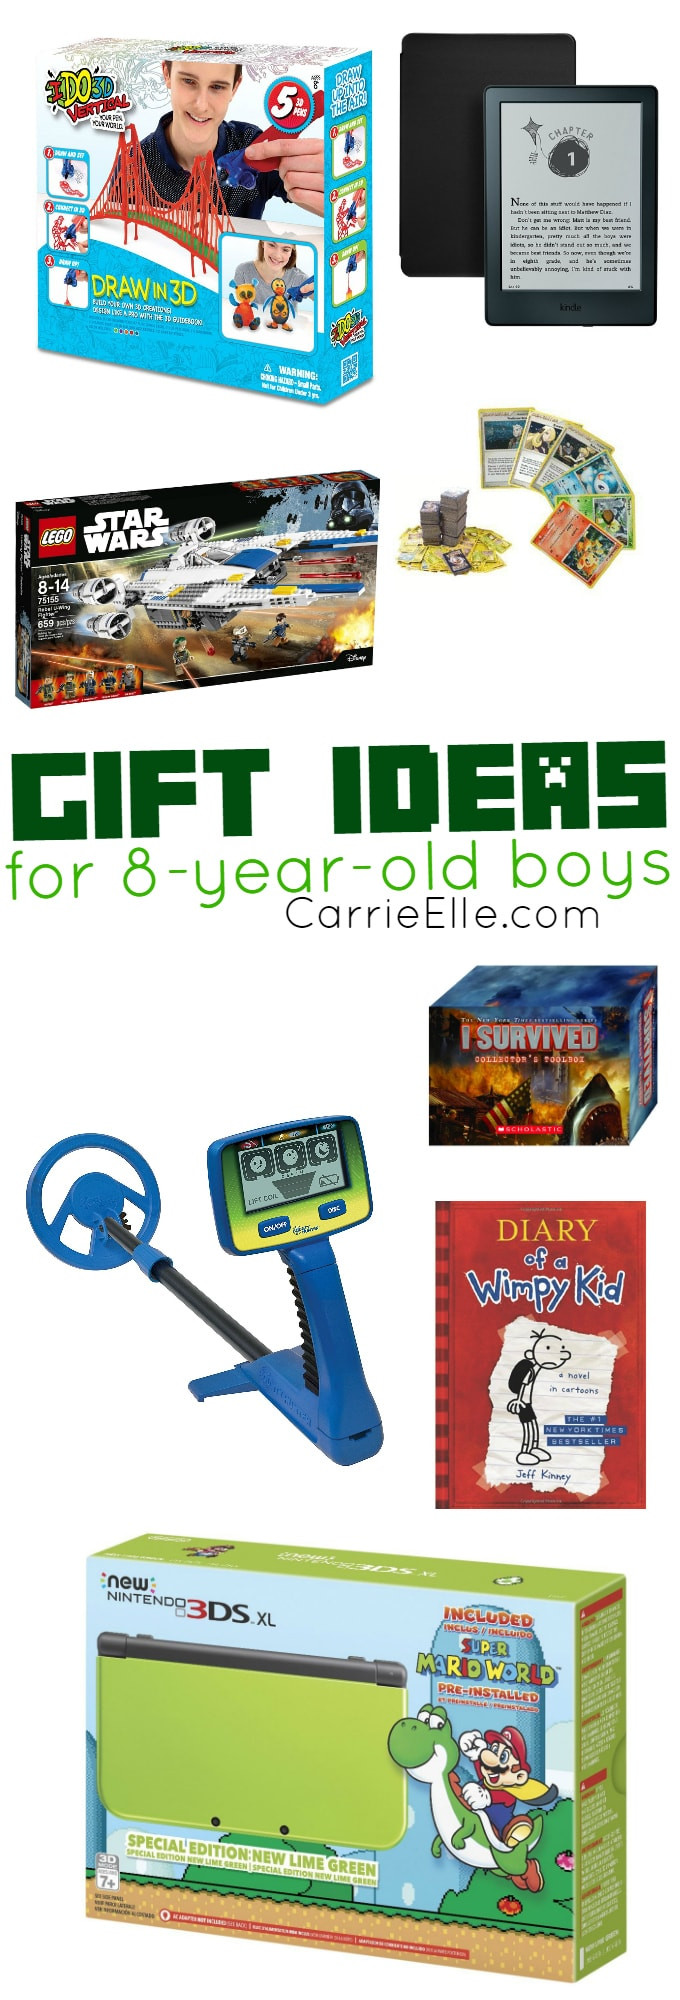 Best ideas about Gift Ideas For 8 Yr Old Boy . Save or Pin Gift Ideas for 8 Year Old Boys Carrie Elle Now.